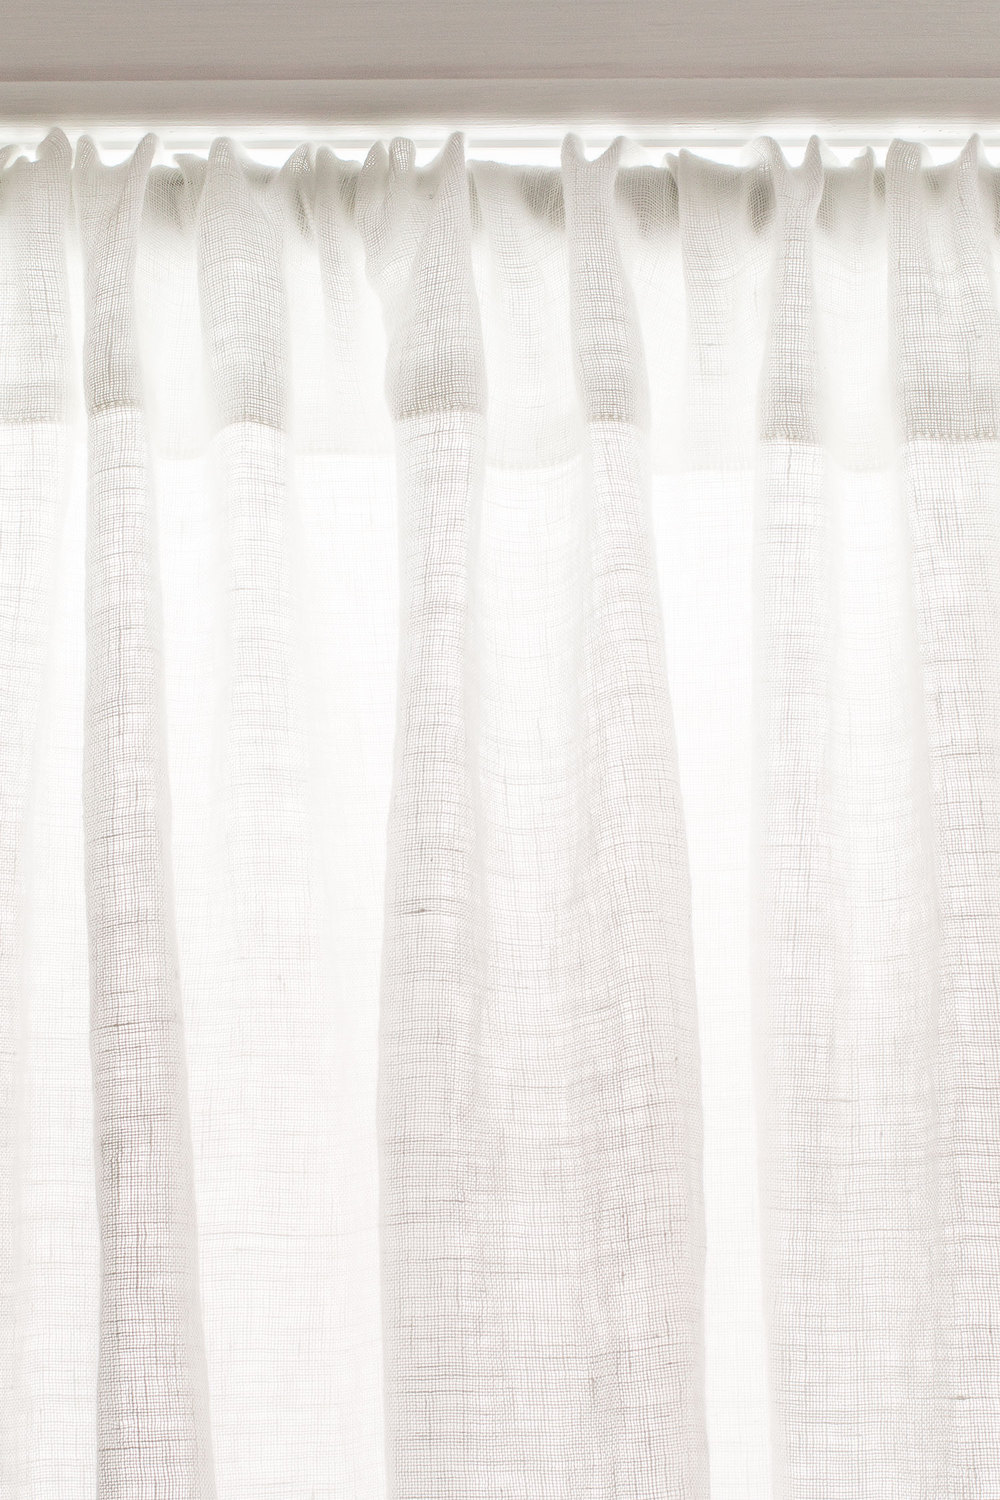 price dp natural linen shlnch sheer amazon drapes open curtain curtains kitchen com home half weave